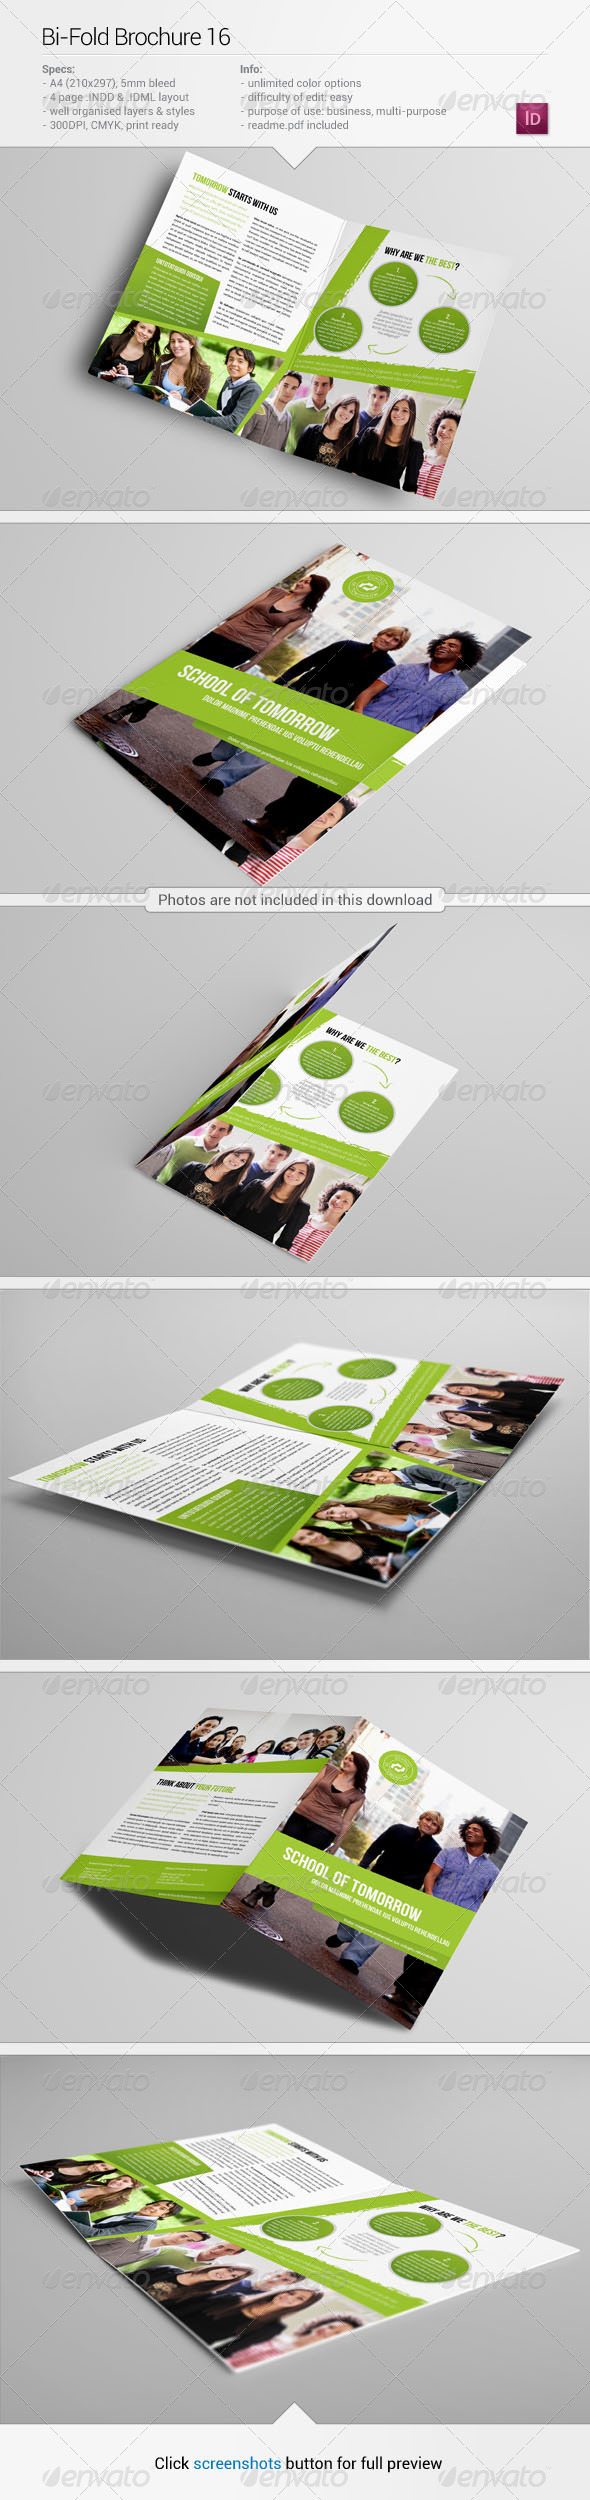 GraphicRiver Bi-Fold Brochure 16 5629736